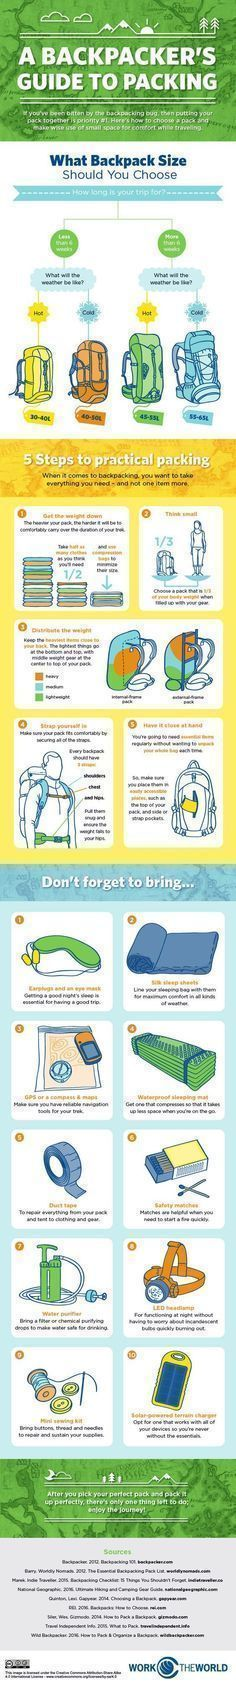 A Backpacker's Guide to Packing - Imgur #backpackingpackingguide